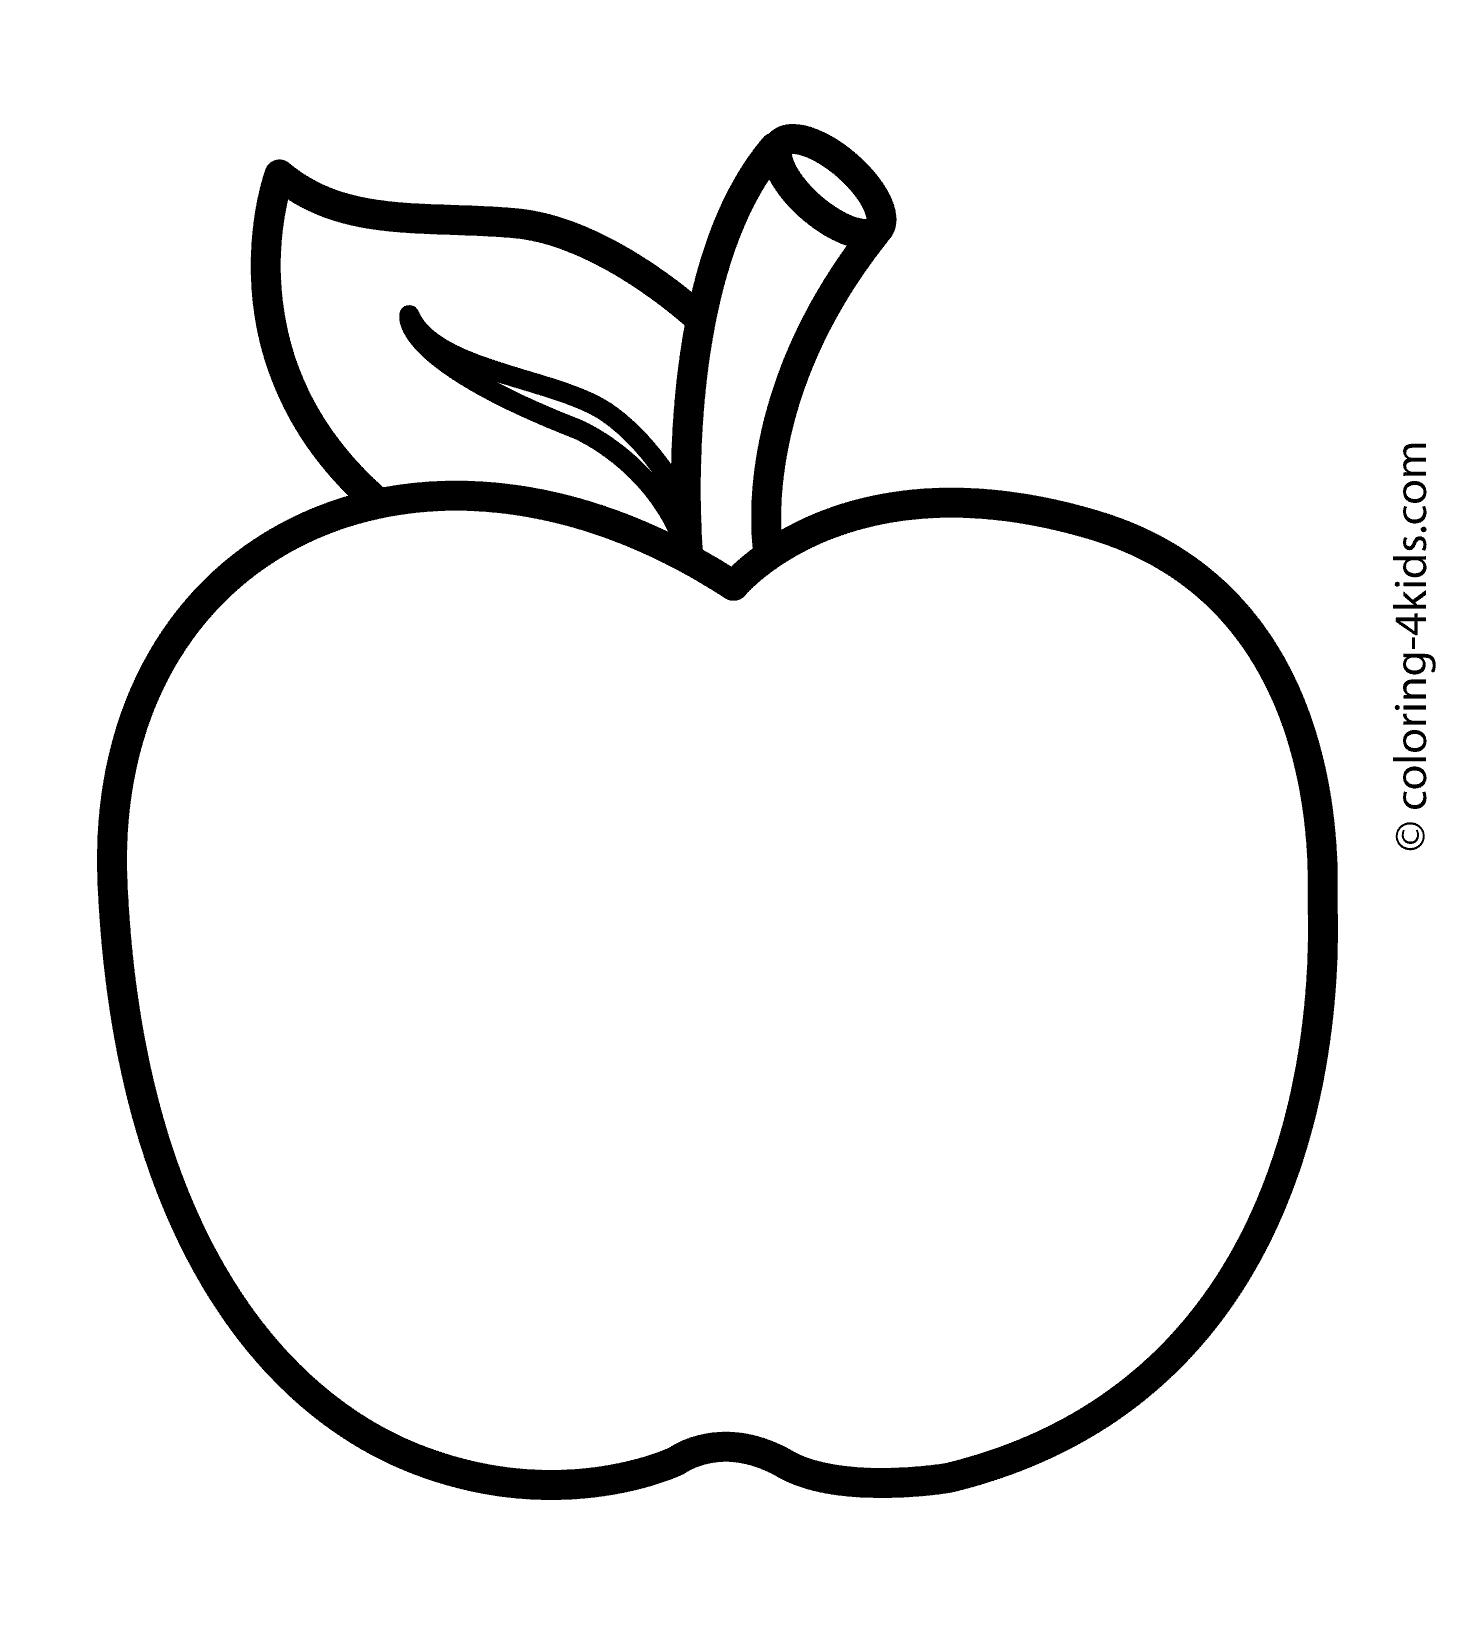 coloring pages apple apple coloring pages to print coloring apple pages